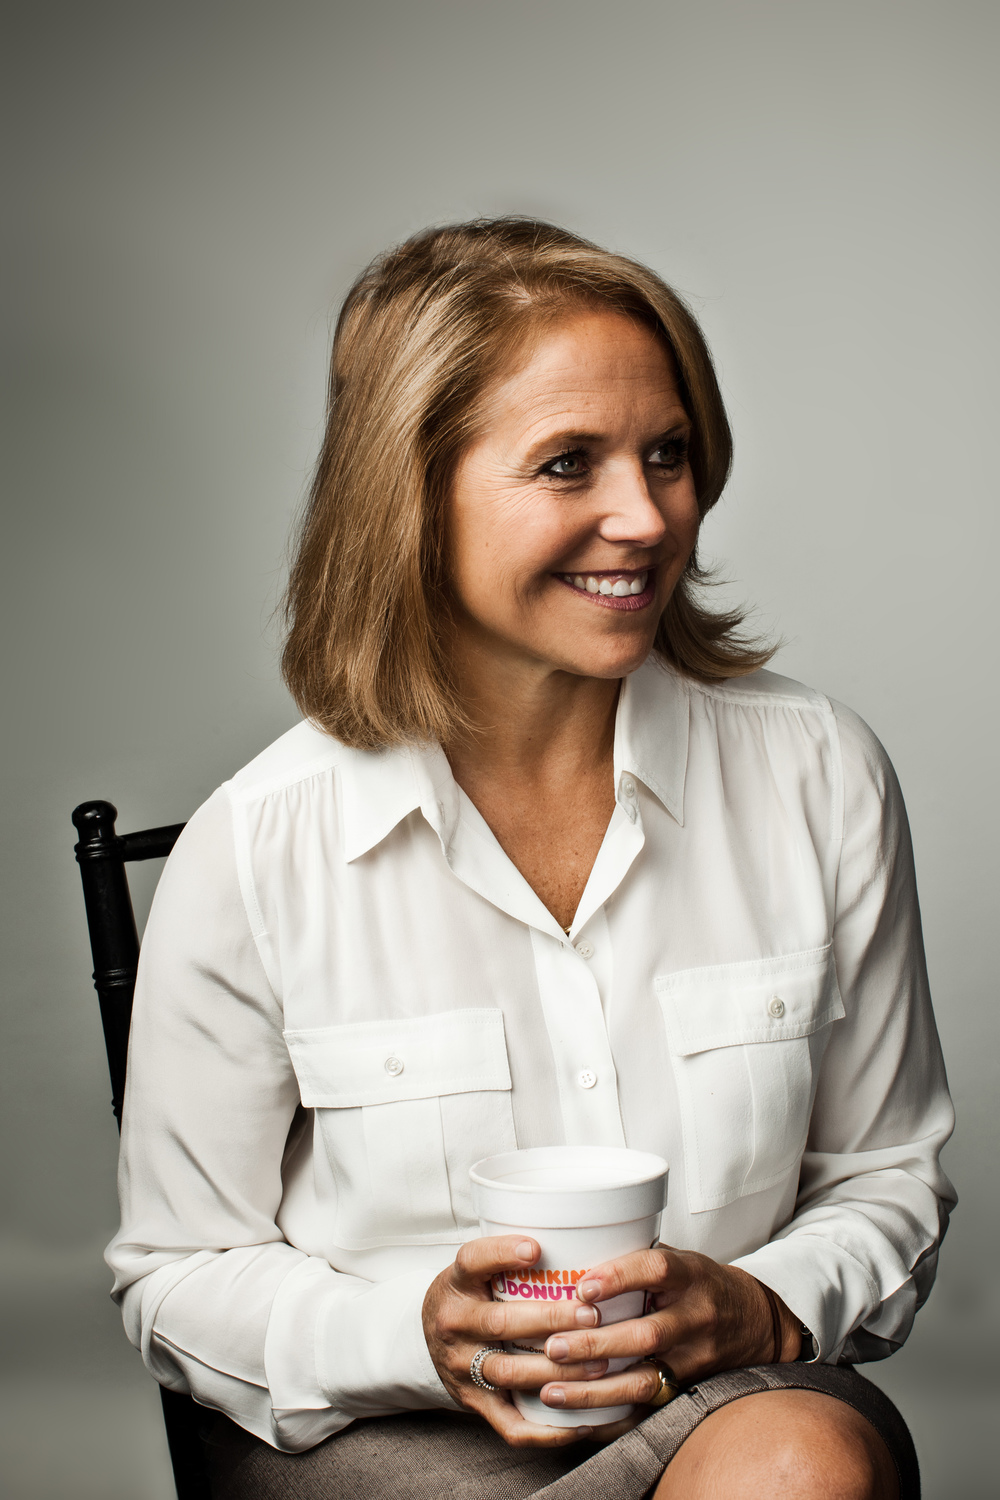 Journalist Katie Couric